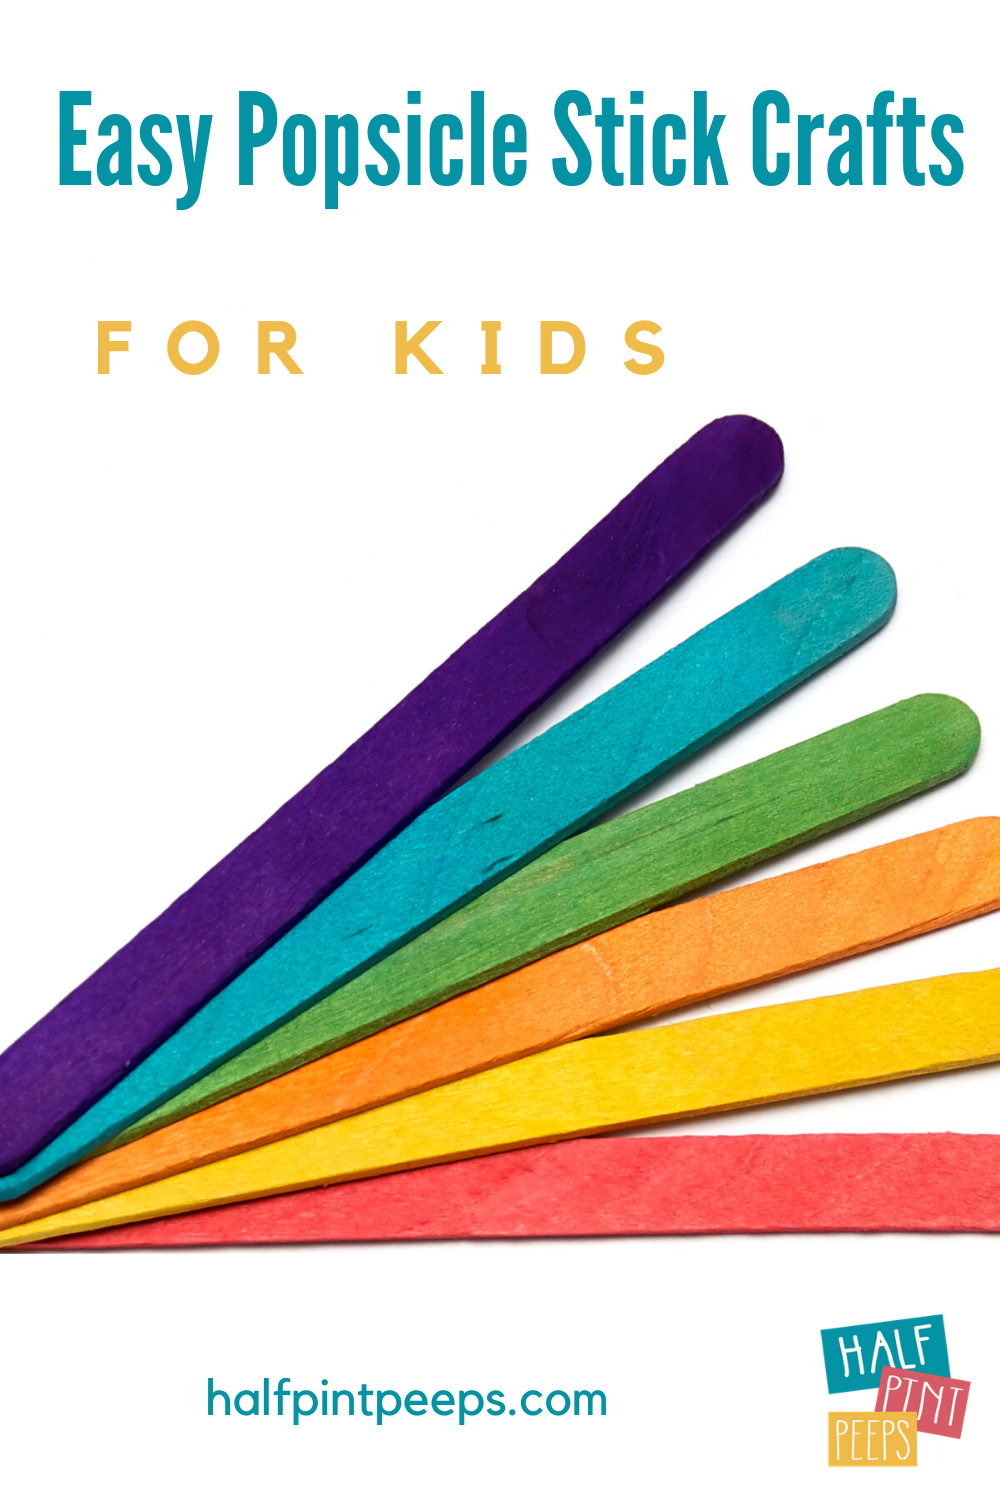 Keep The Kids Busy With These Easy Popsicle Stick Crafts For Kids Popsicle Stick Crafts For Kids Popsicle Stick Crafts Craft Stick Crafts